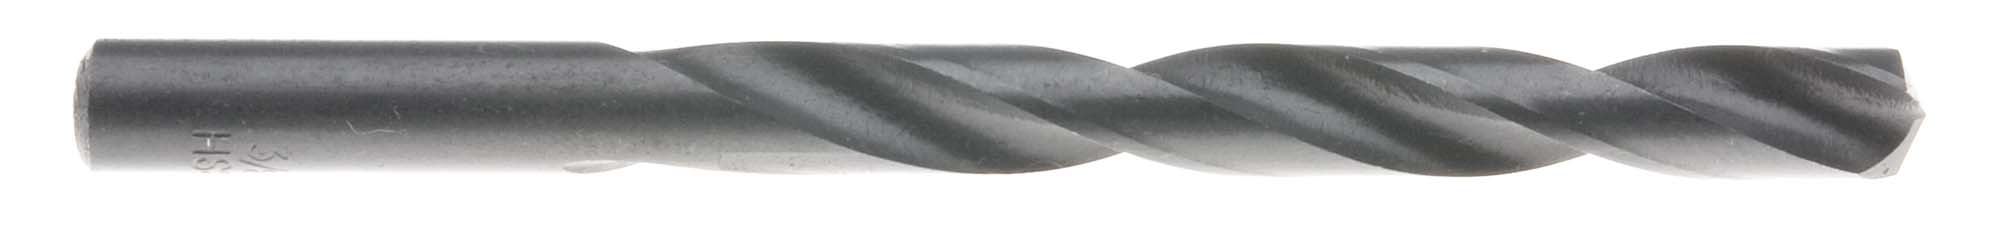 "H (.266"") Heavy Duty Split Point Jobber Drill Bit, High Speed Steel"